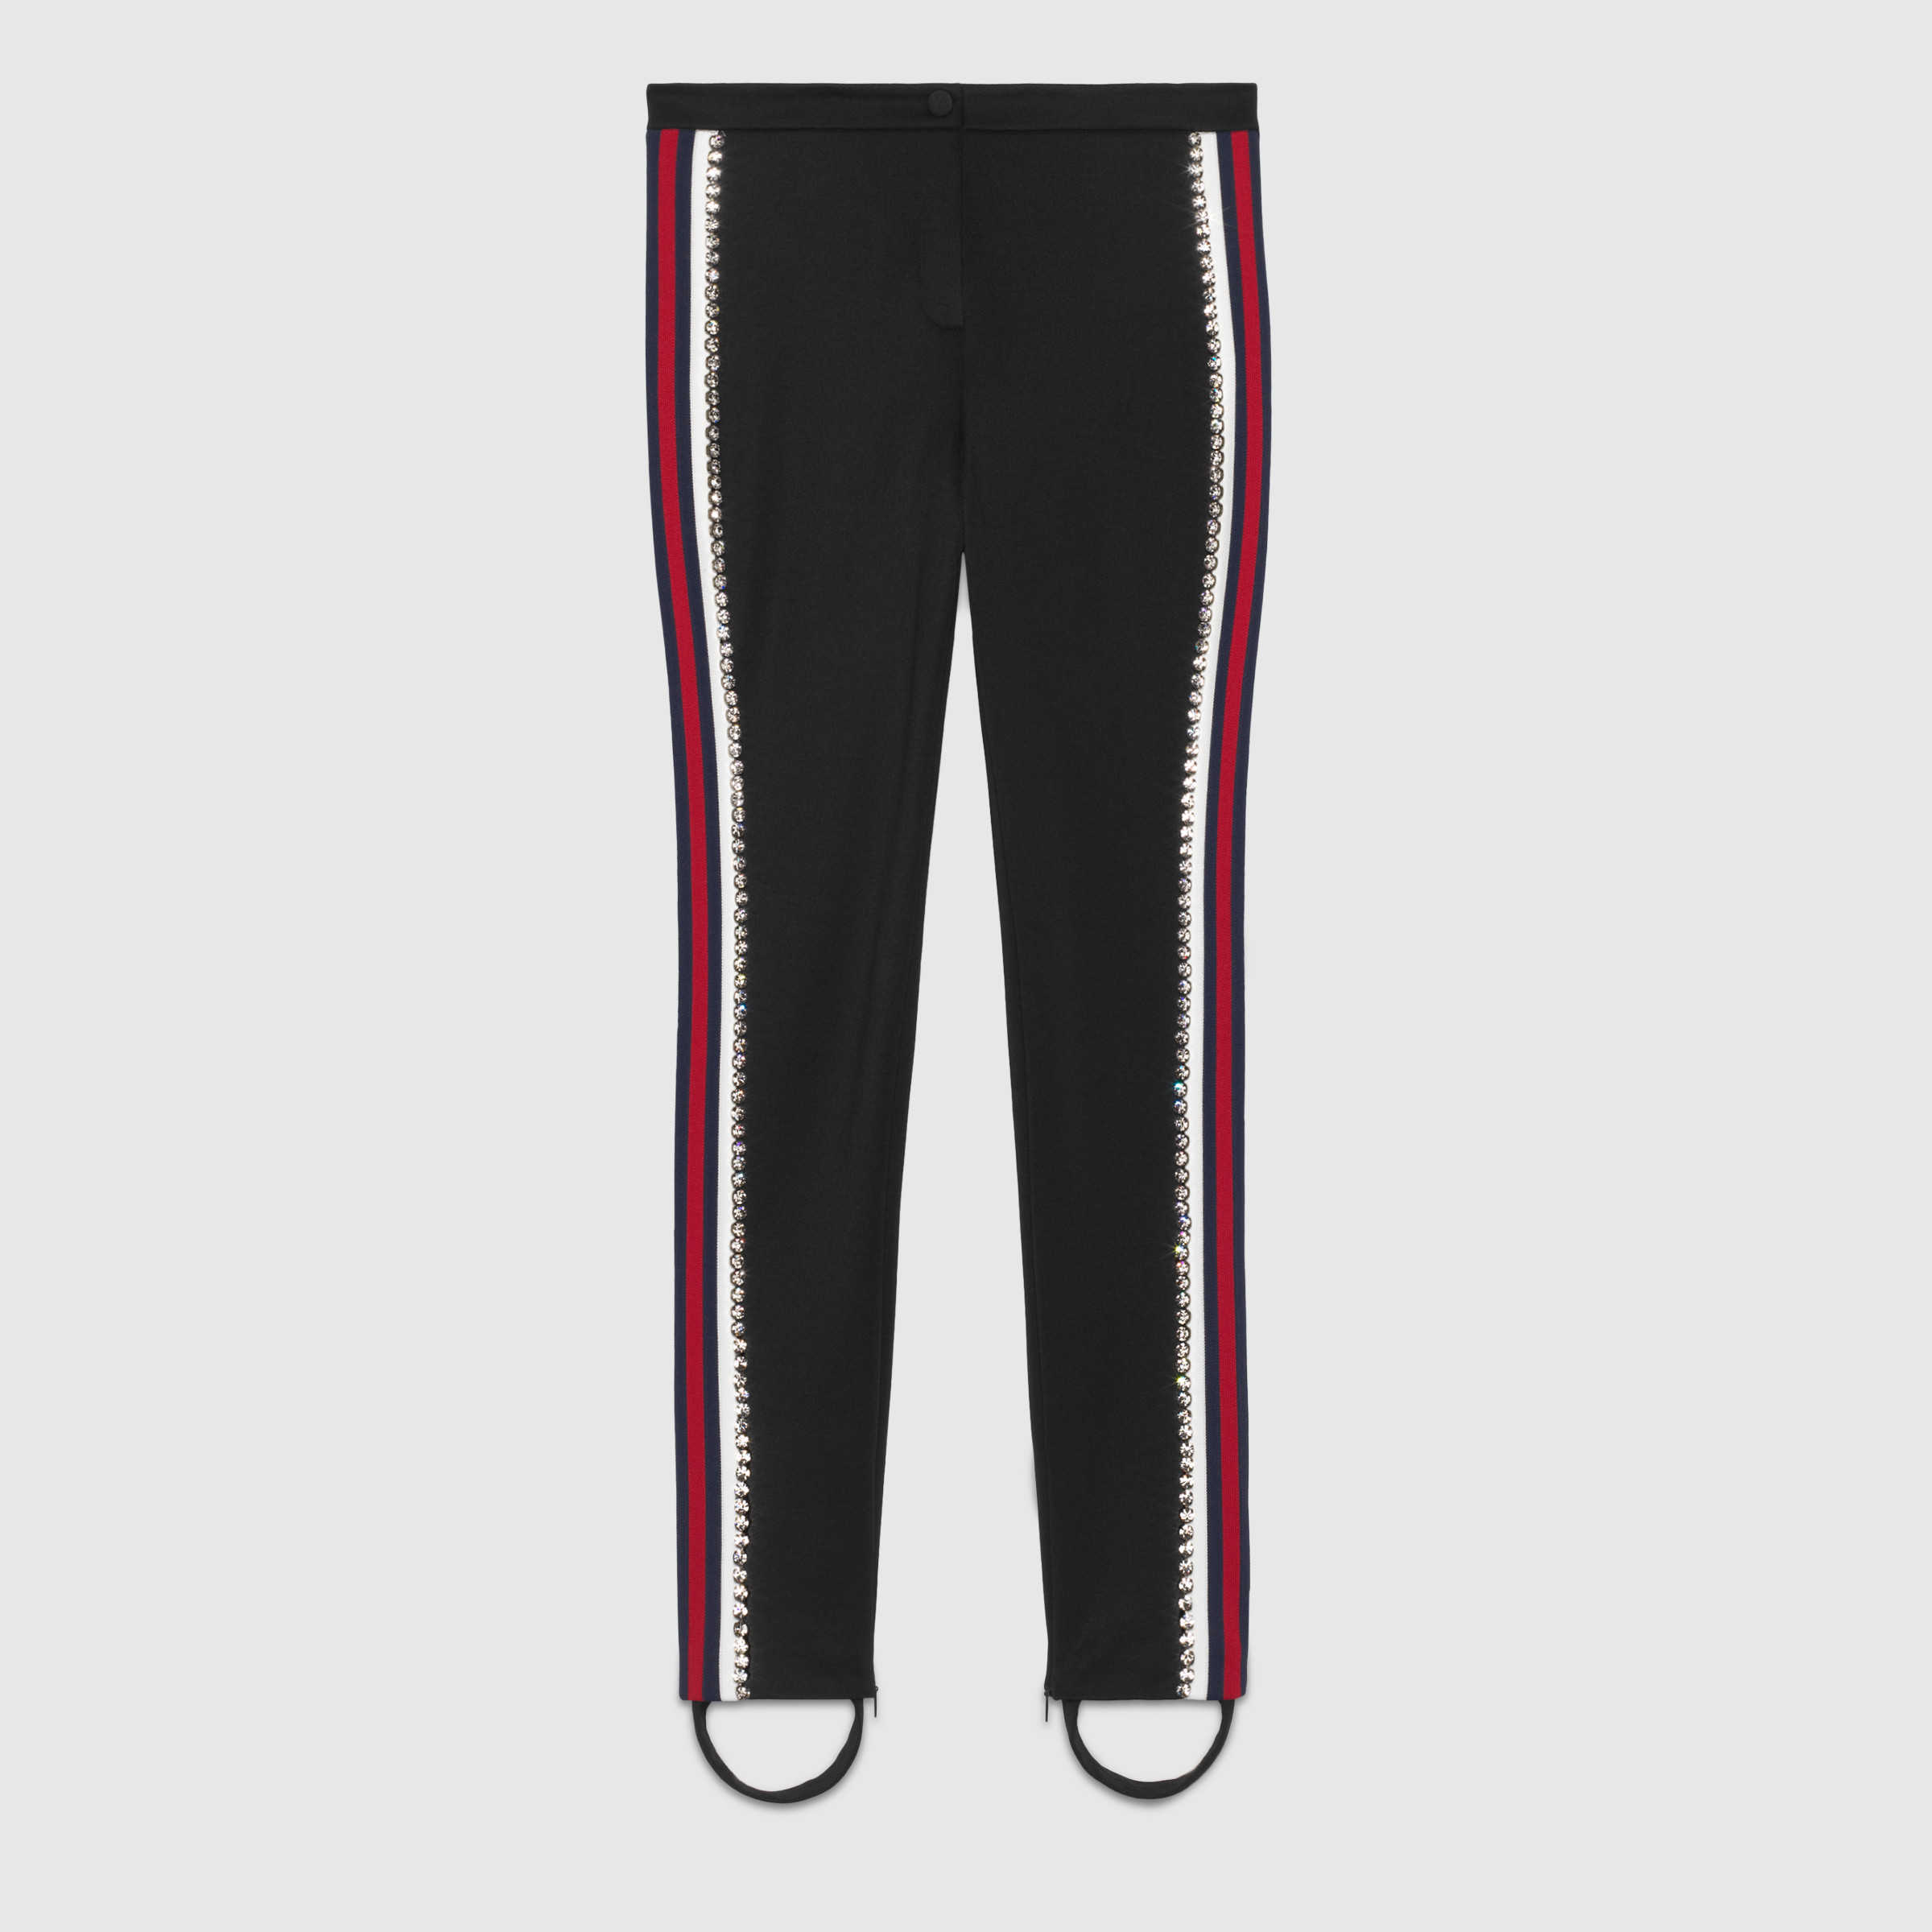 Gucci - Technical jersey stirrup legging with crystalsGucci.com, $2,200